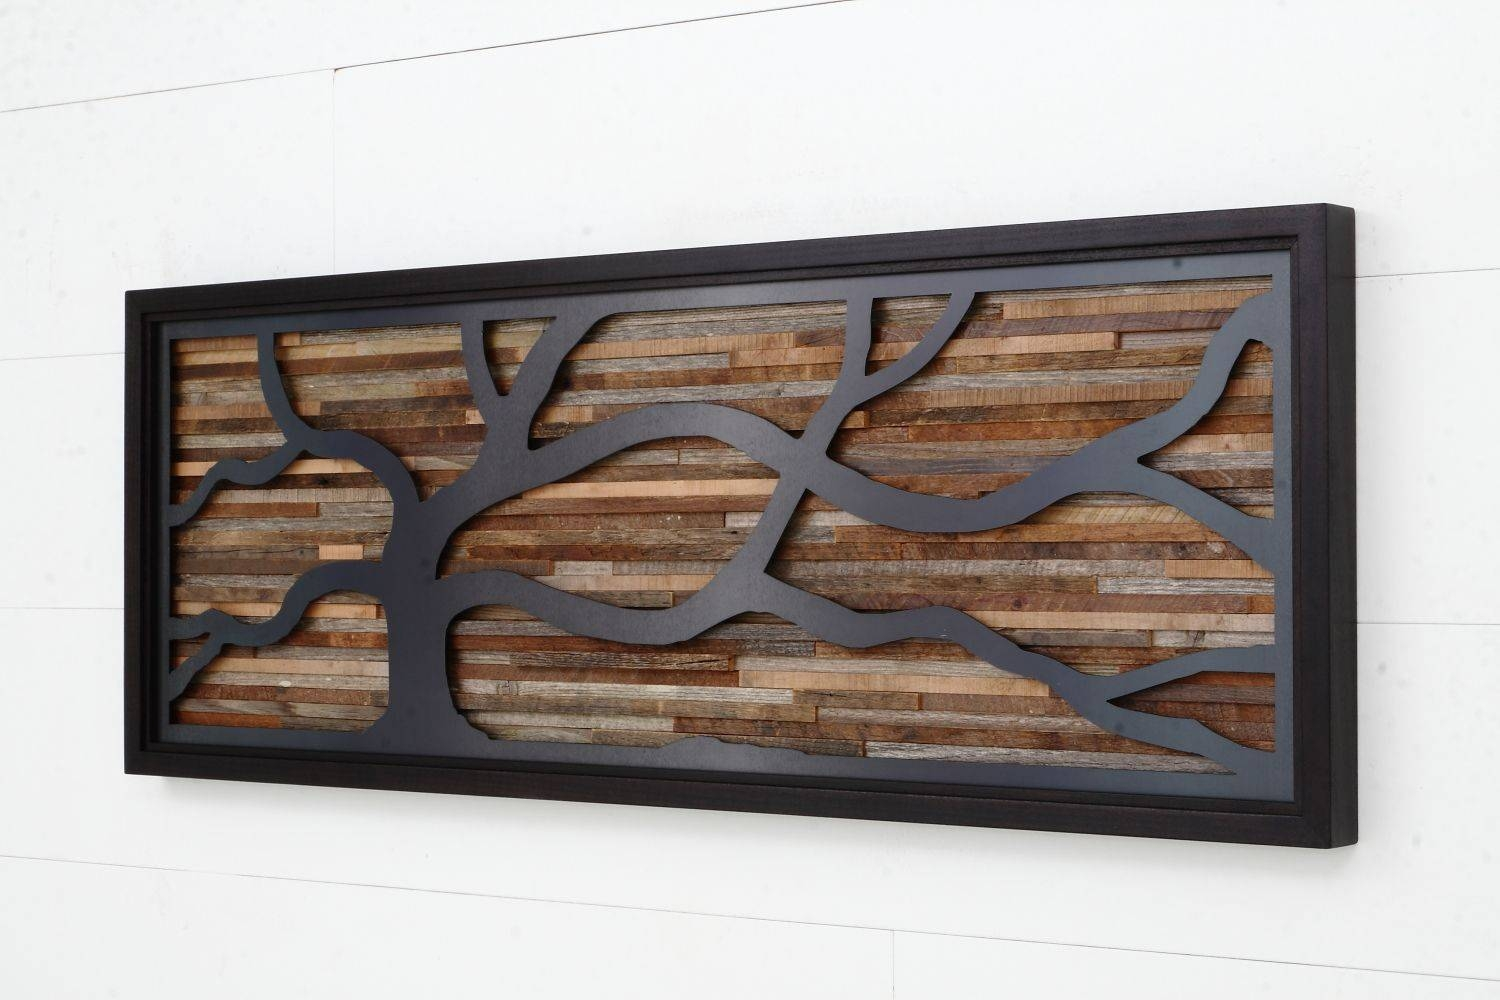 Hand Crafted Wood Wall Art Made Of Old Barnwood And Natural Black Throughout Newest Natural Wood Wall Art (View 6 of 20)